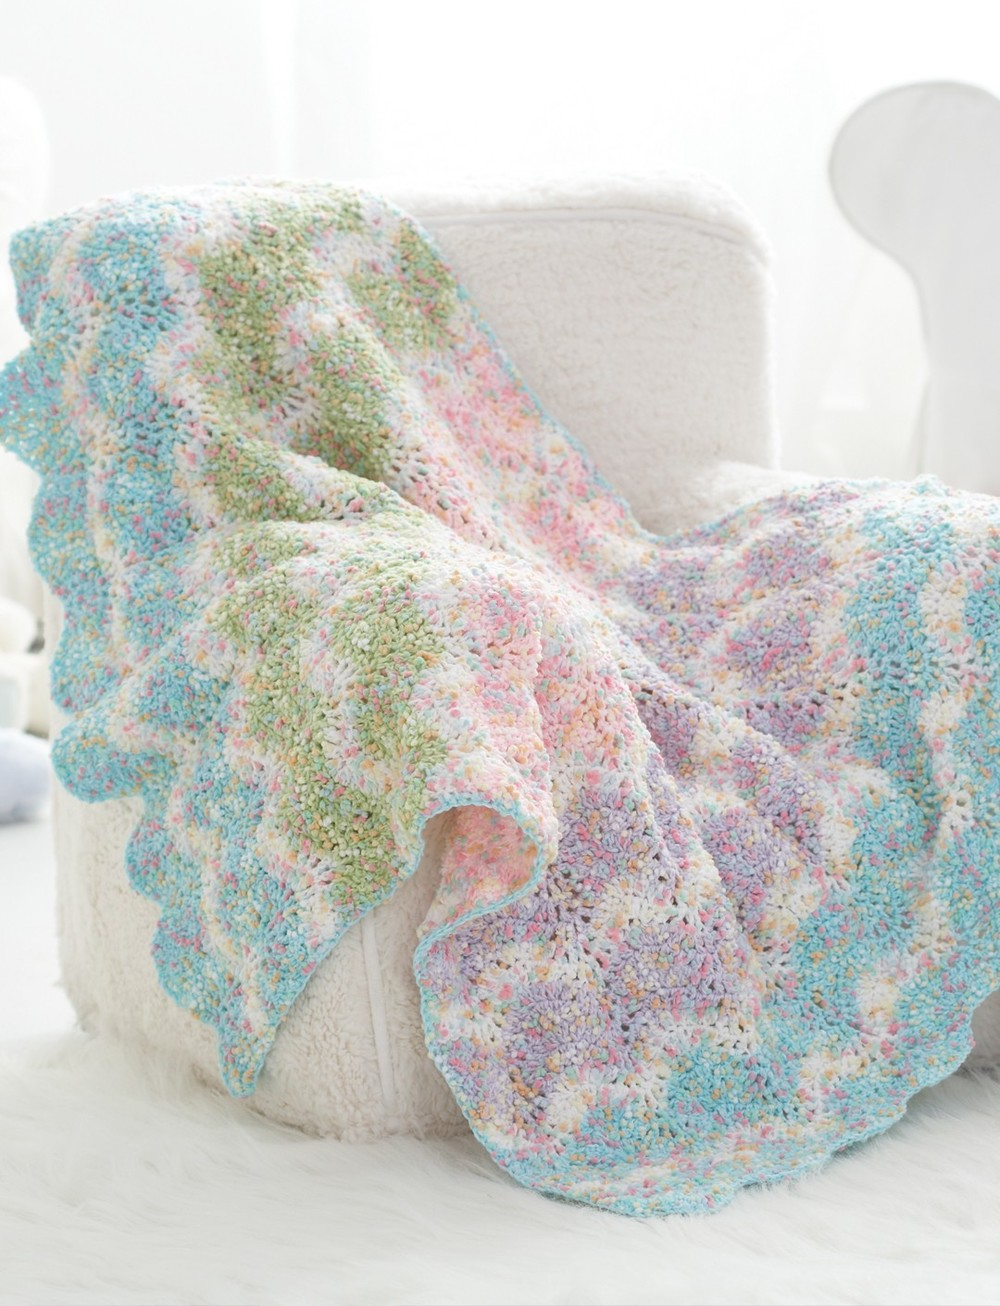 Crochet Patterns Using Bernat Home Bundle : Sweet-Pastel-Waves-Crochet-Baby-Blanket-Pattern_ExtraLarge1000_ID ...